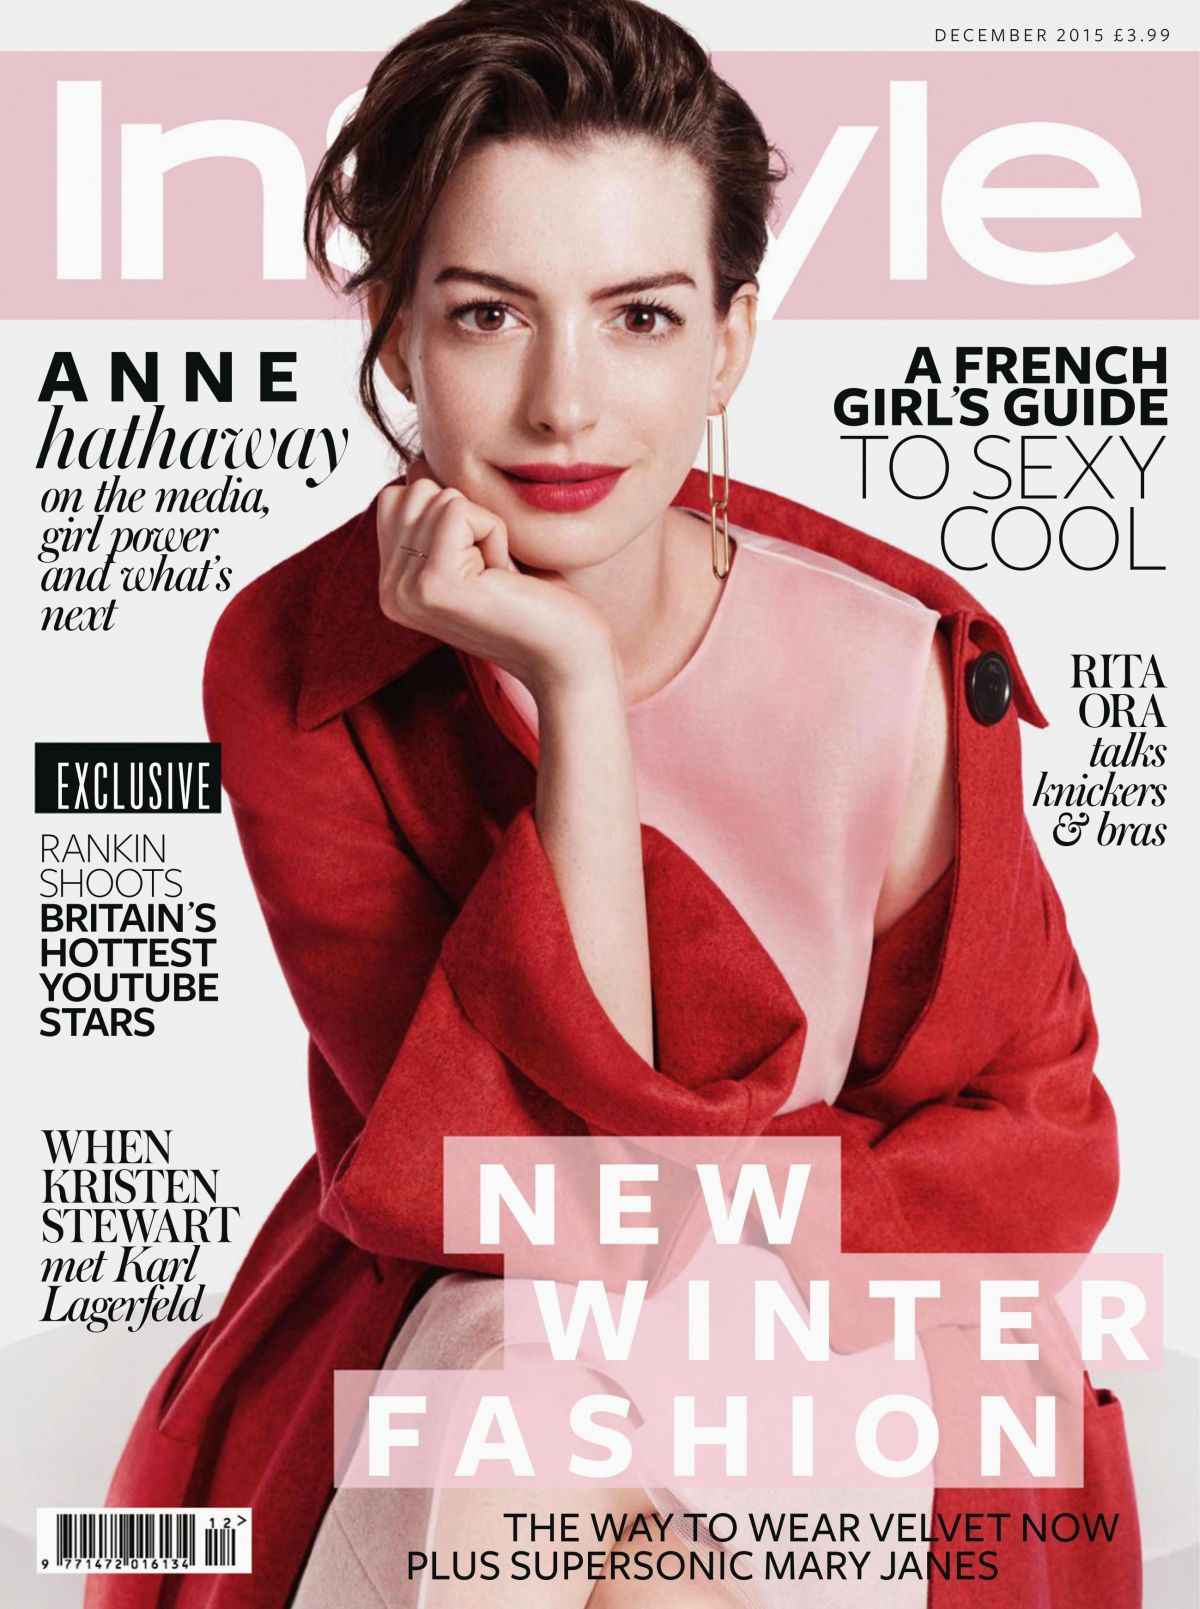 Instyle Magazine Us: ANNE HATHAWAY In Instyle Magazine, UK December 2015 Issue